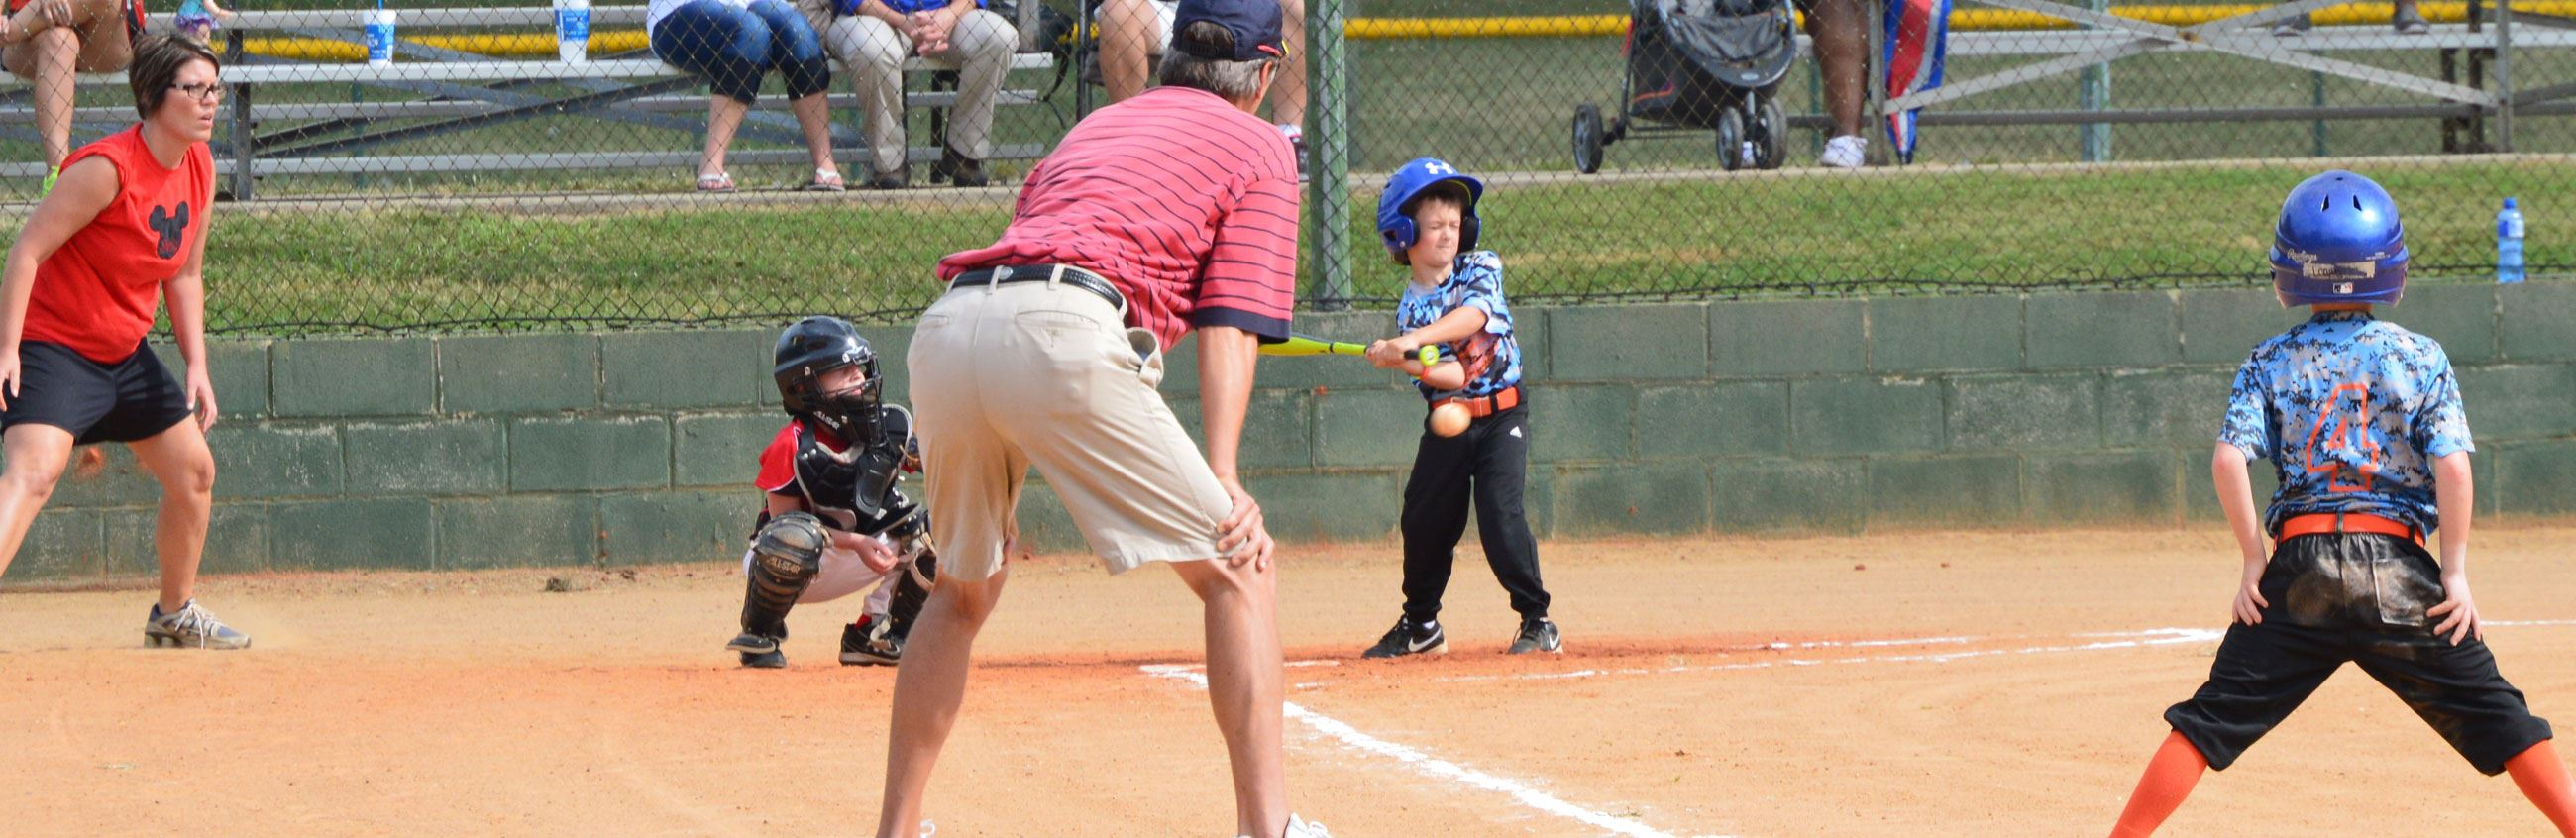 Kid at Bat at Baseball Game